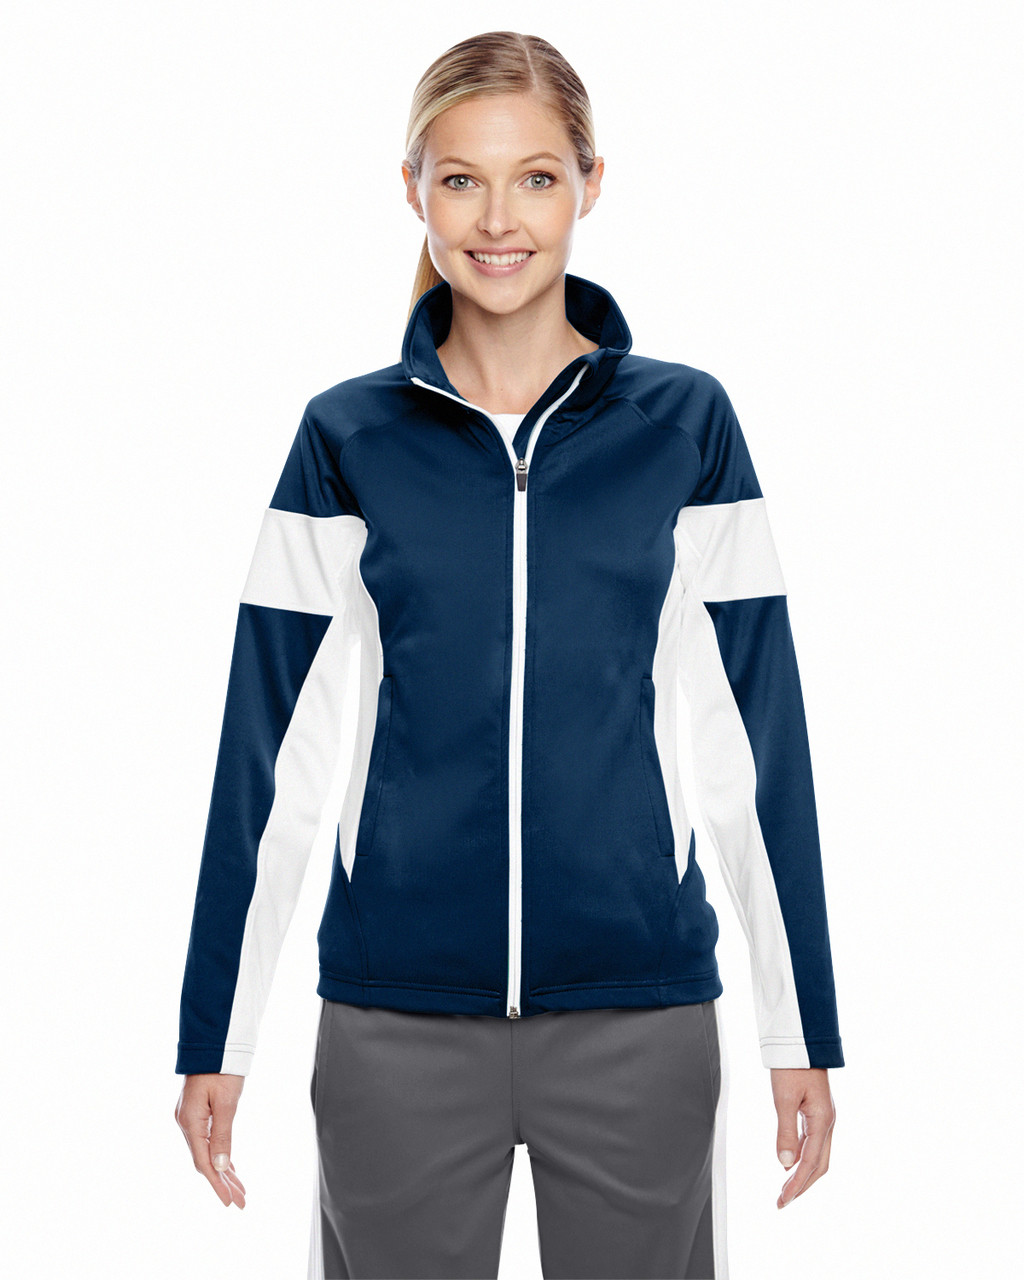 Dark Navy/White - TT34W Team 365 Ladies' Elite Performance Full-Zip Jacket